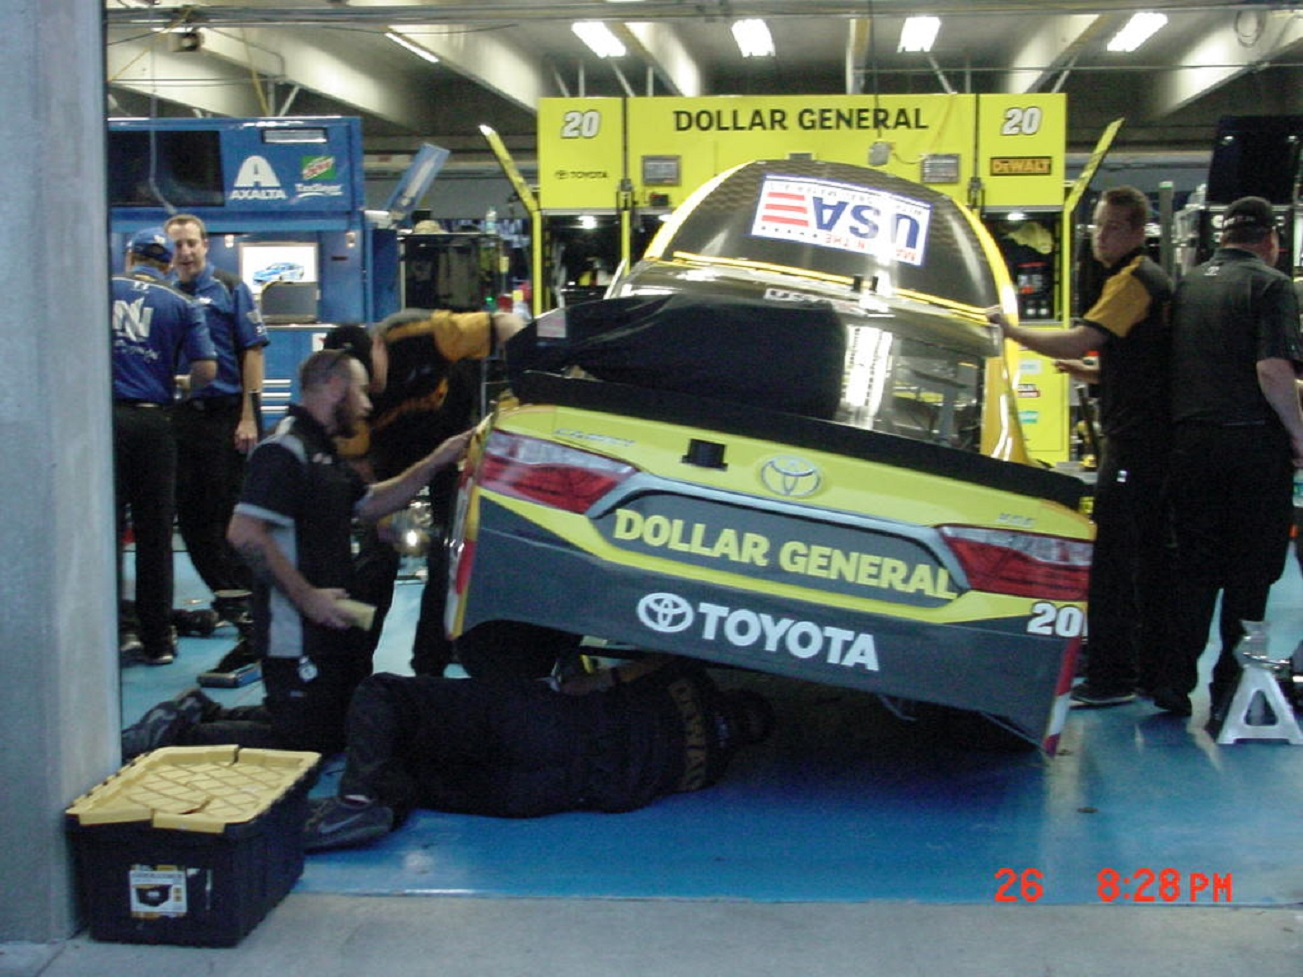 What does a NASCAR race care cost?